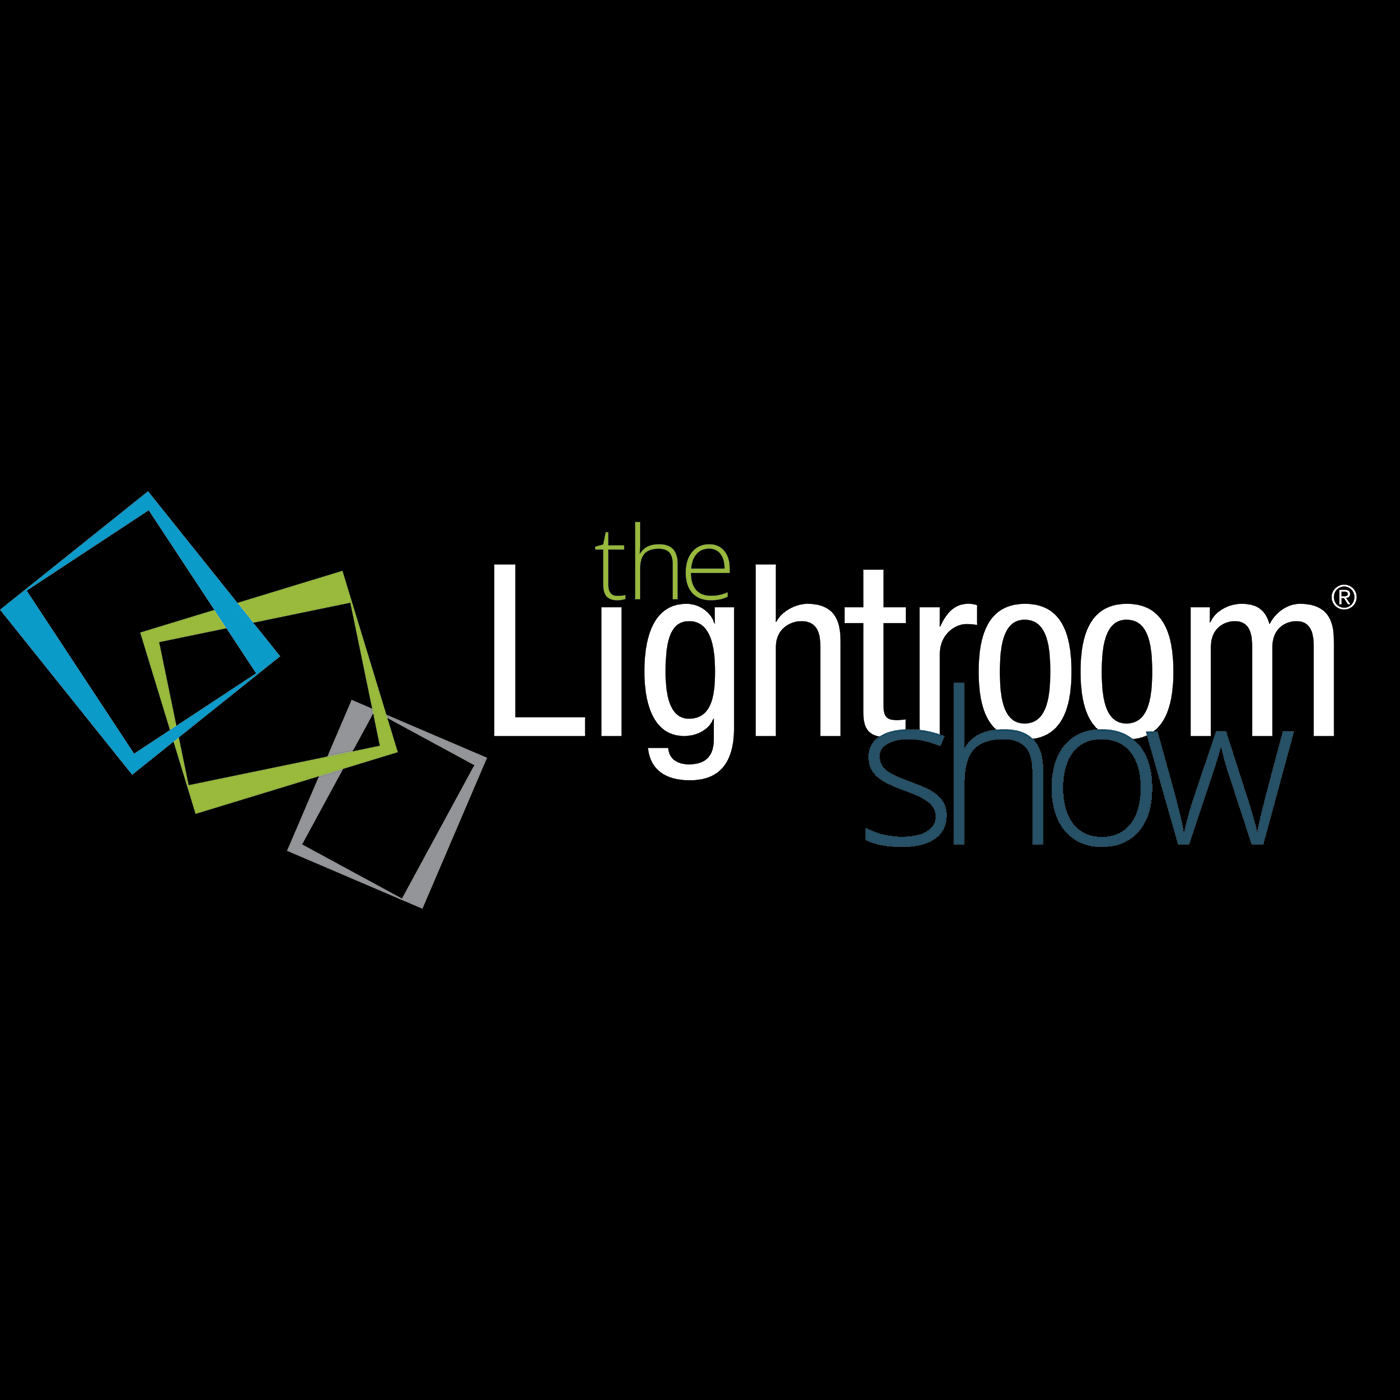 The Lightroom Show